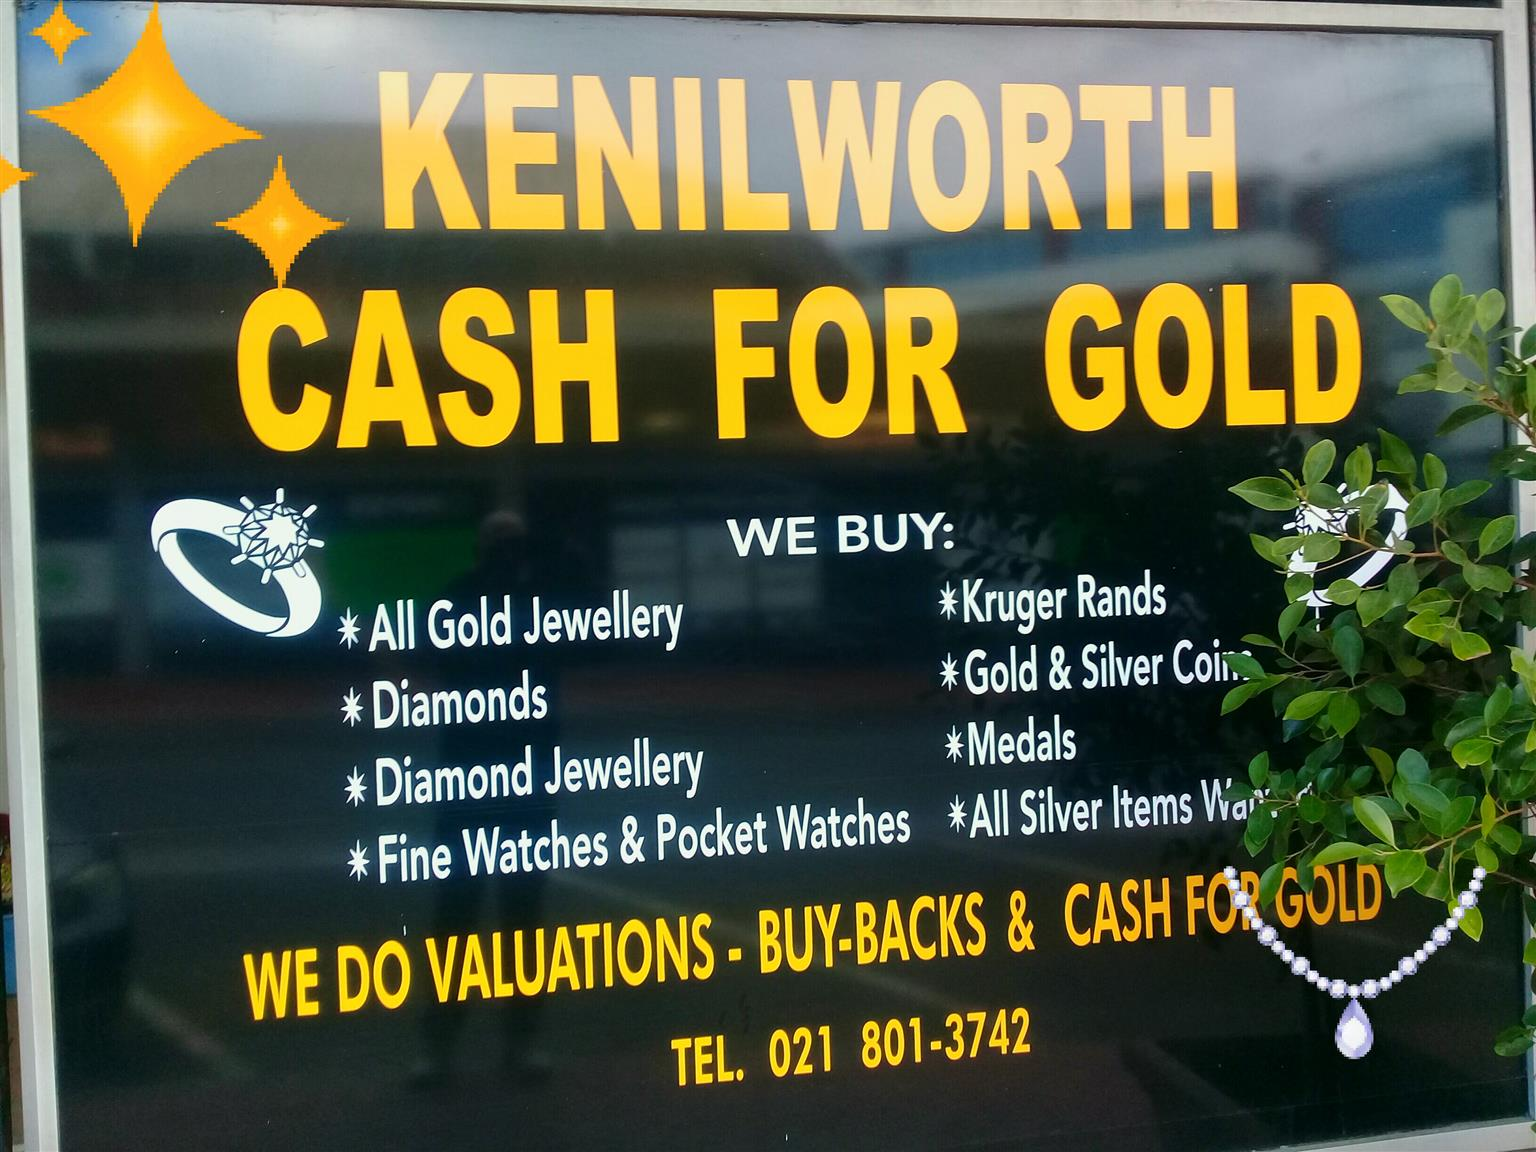 Kenilworth Cash 4 Gold Exchange